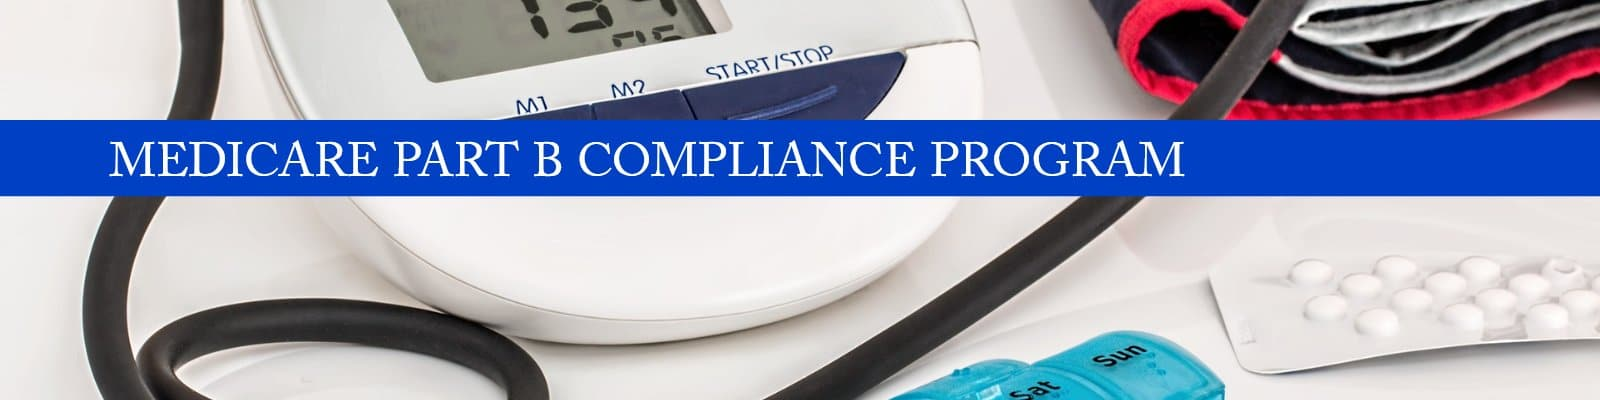 pharmacy medicare part B compliance, pharmacy compliance, pharmacy DMEPOS exempting, pharmacy accreditation requirements